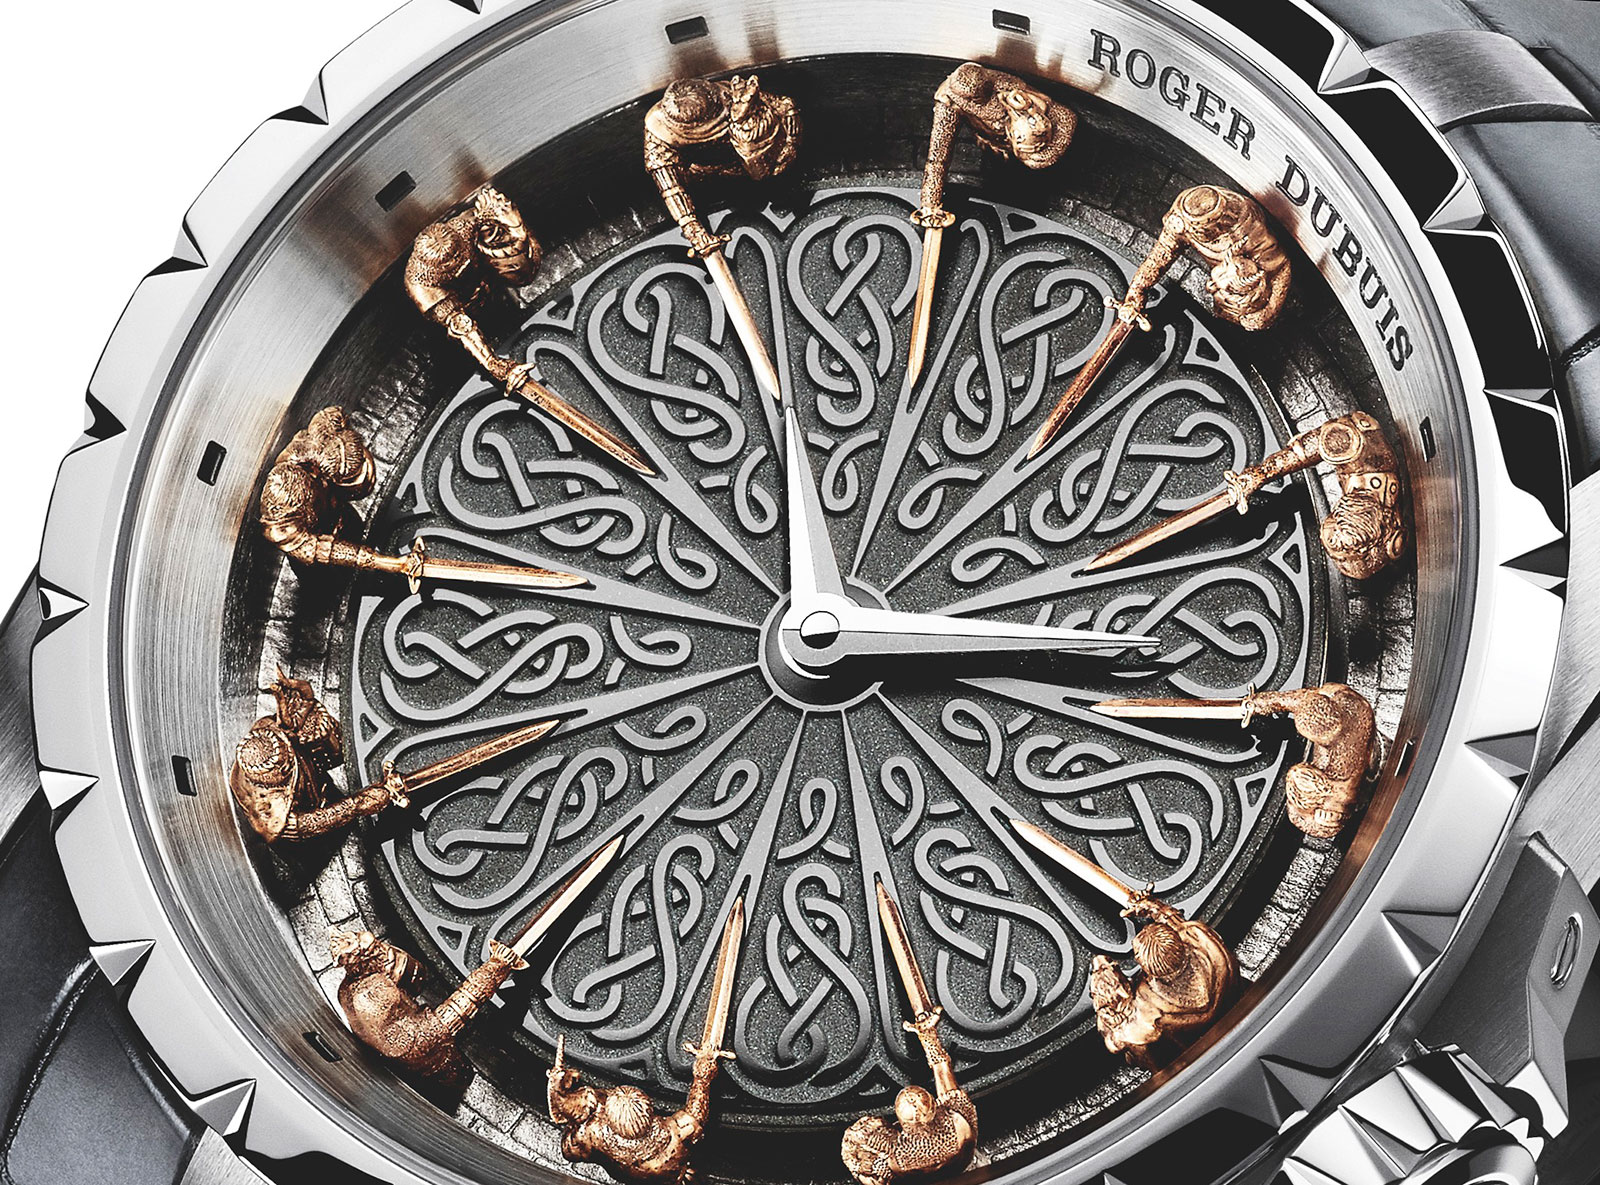 Creditable wristwatch for men roger dubuis excalibur for 12 knights of the round table and their characteristics